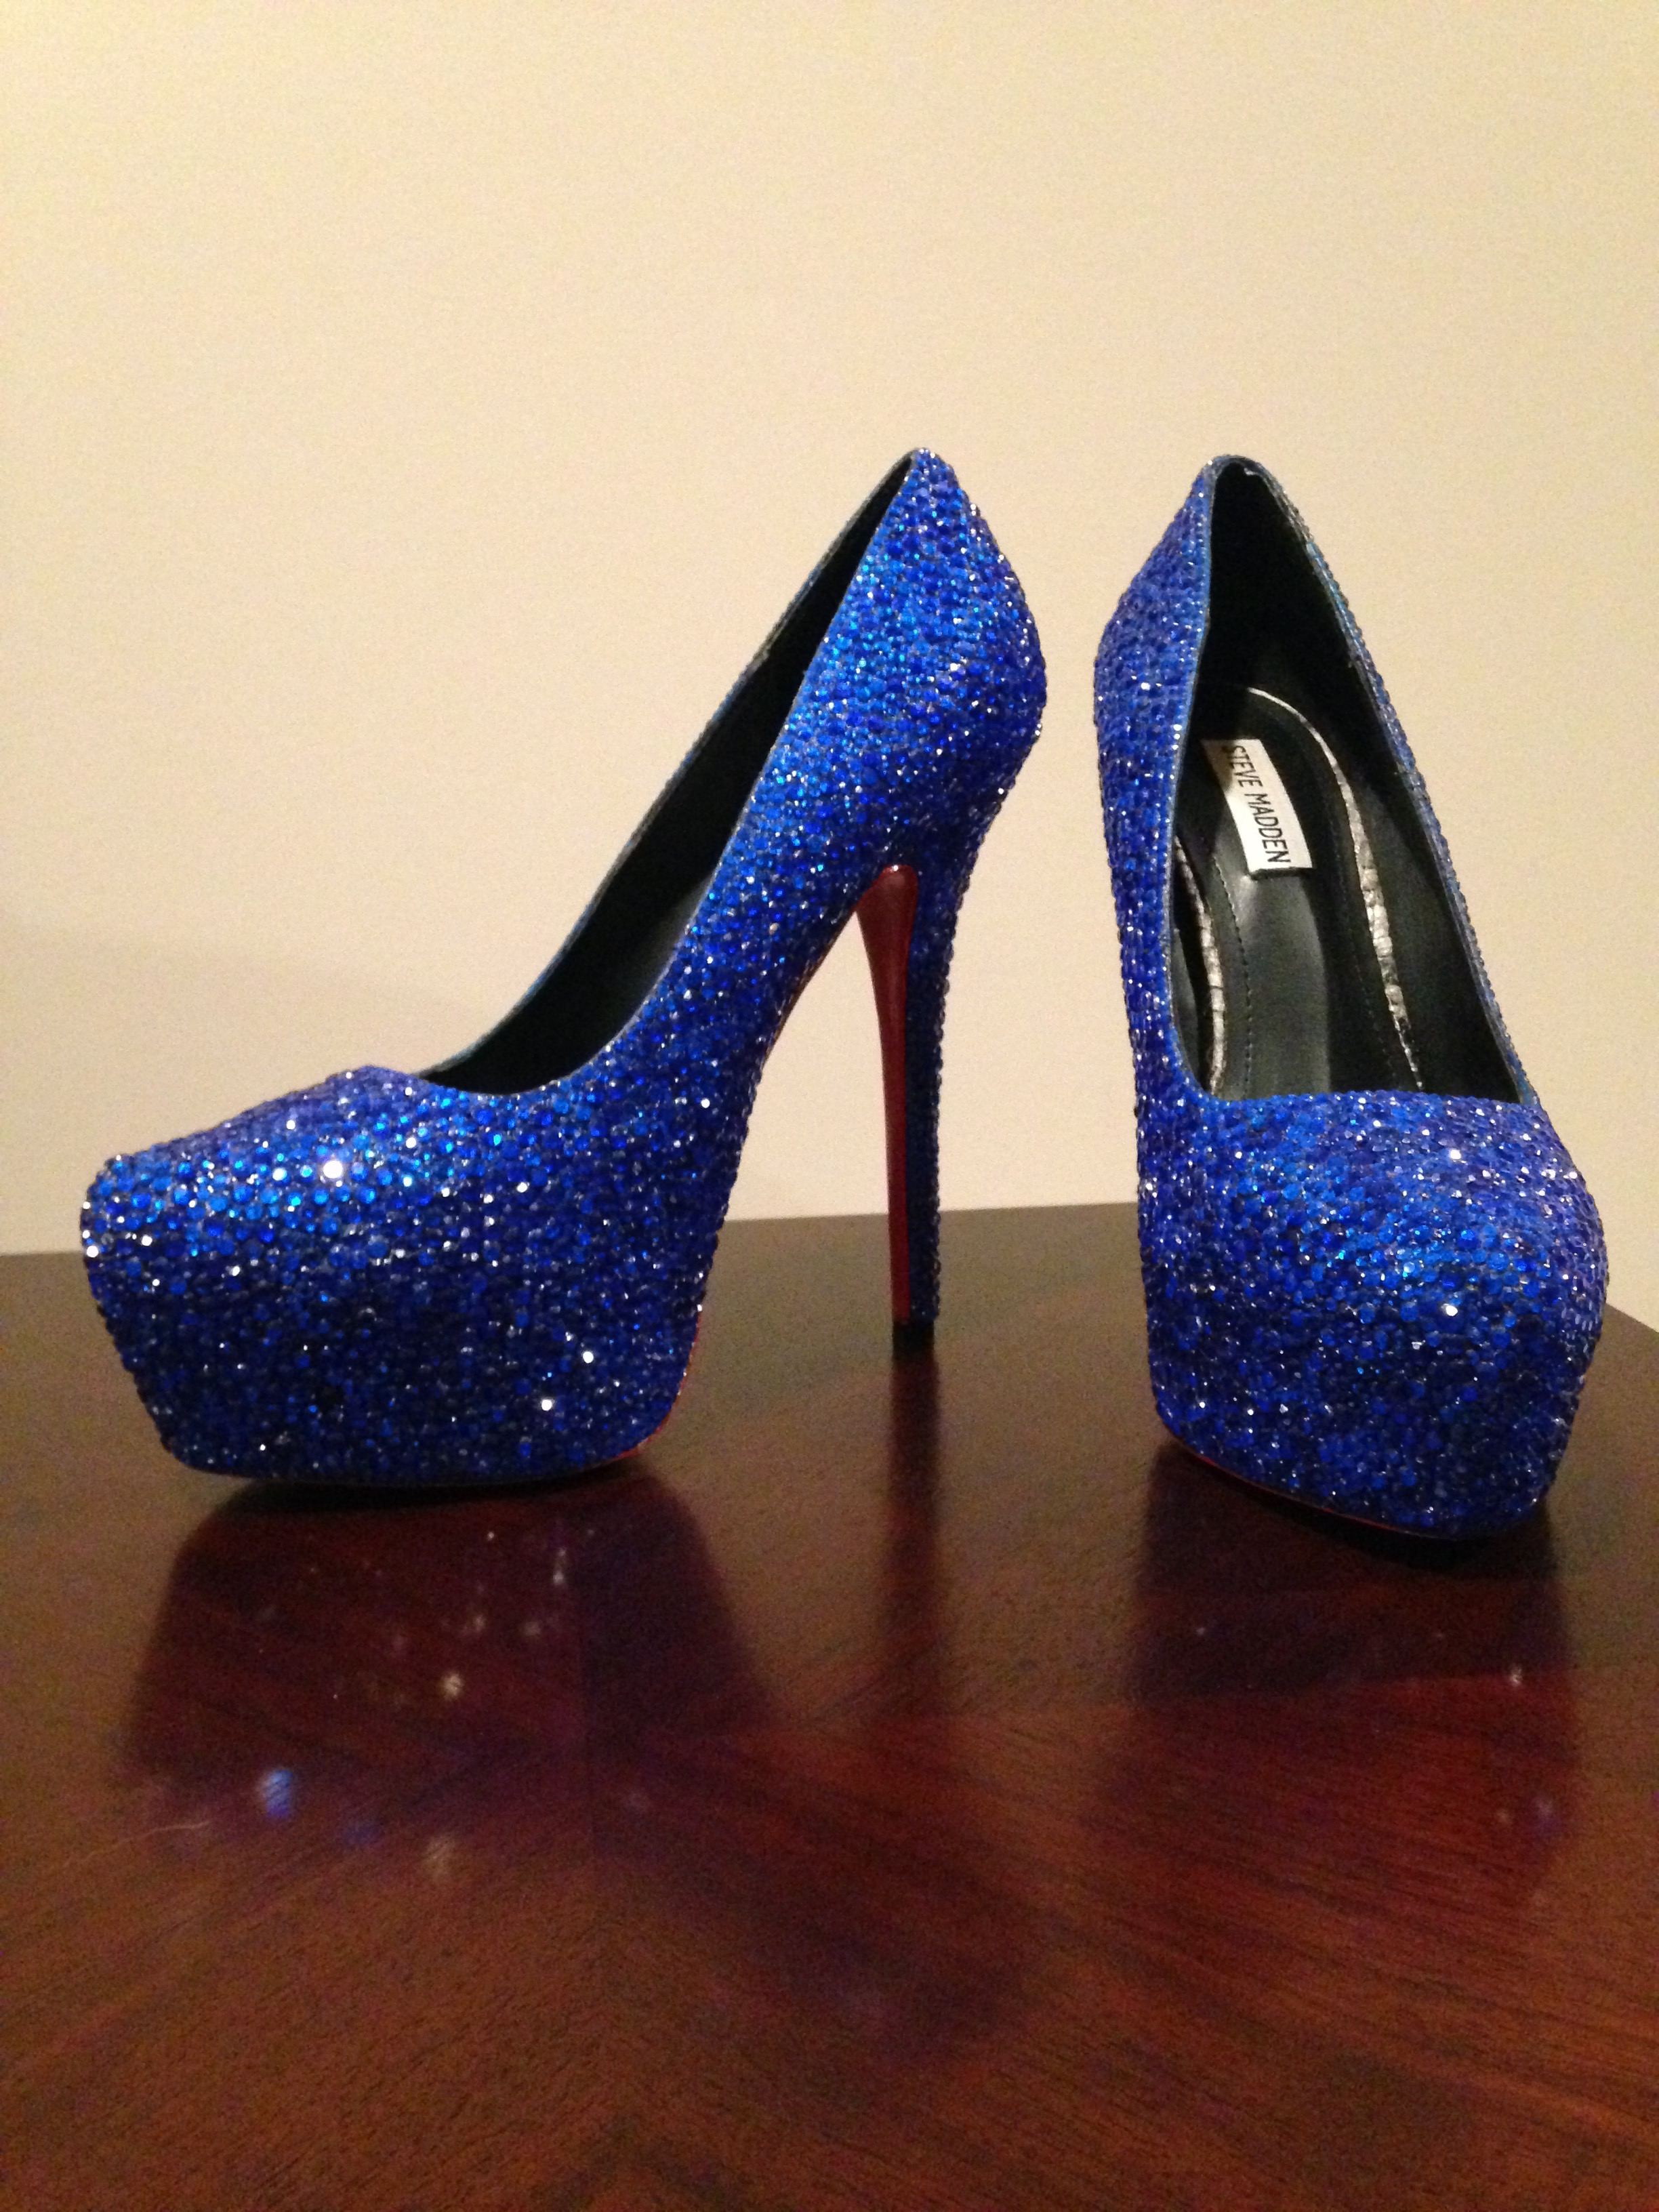 a98d1ba81d4 How to Make a $6,000 Pair of Christian Louboutin Heels for $40 | RTM ...